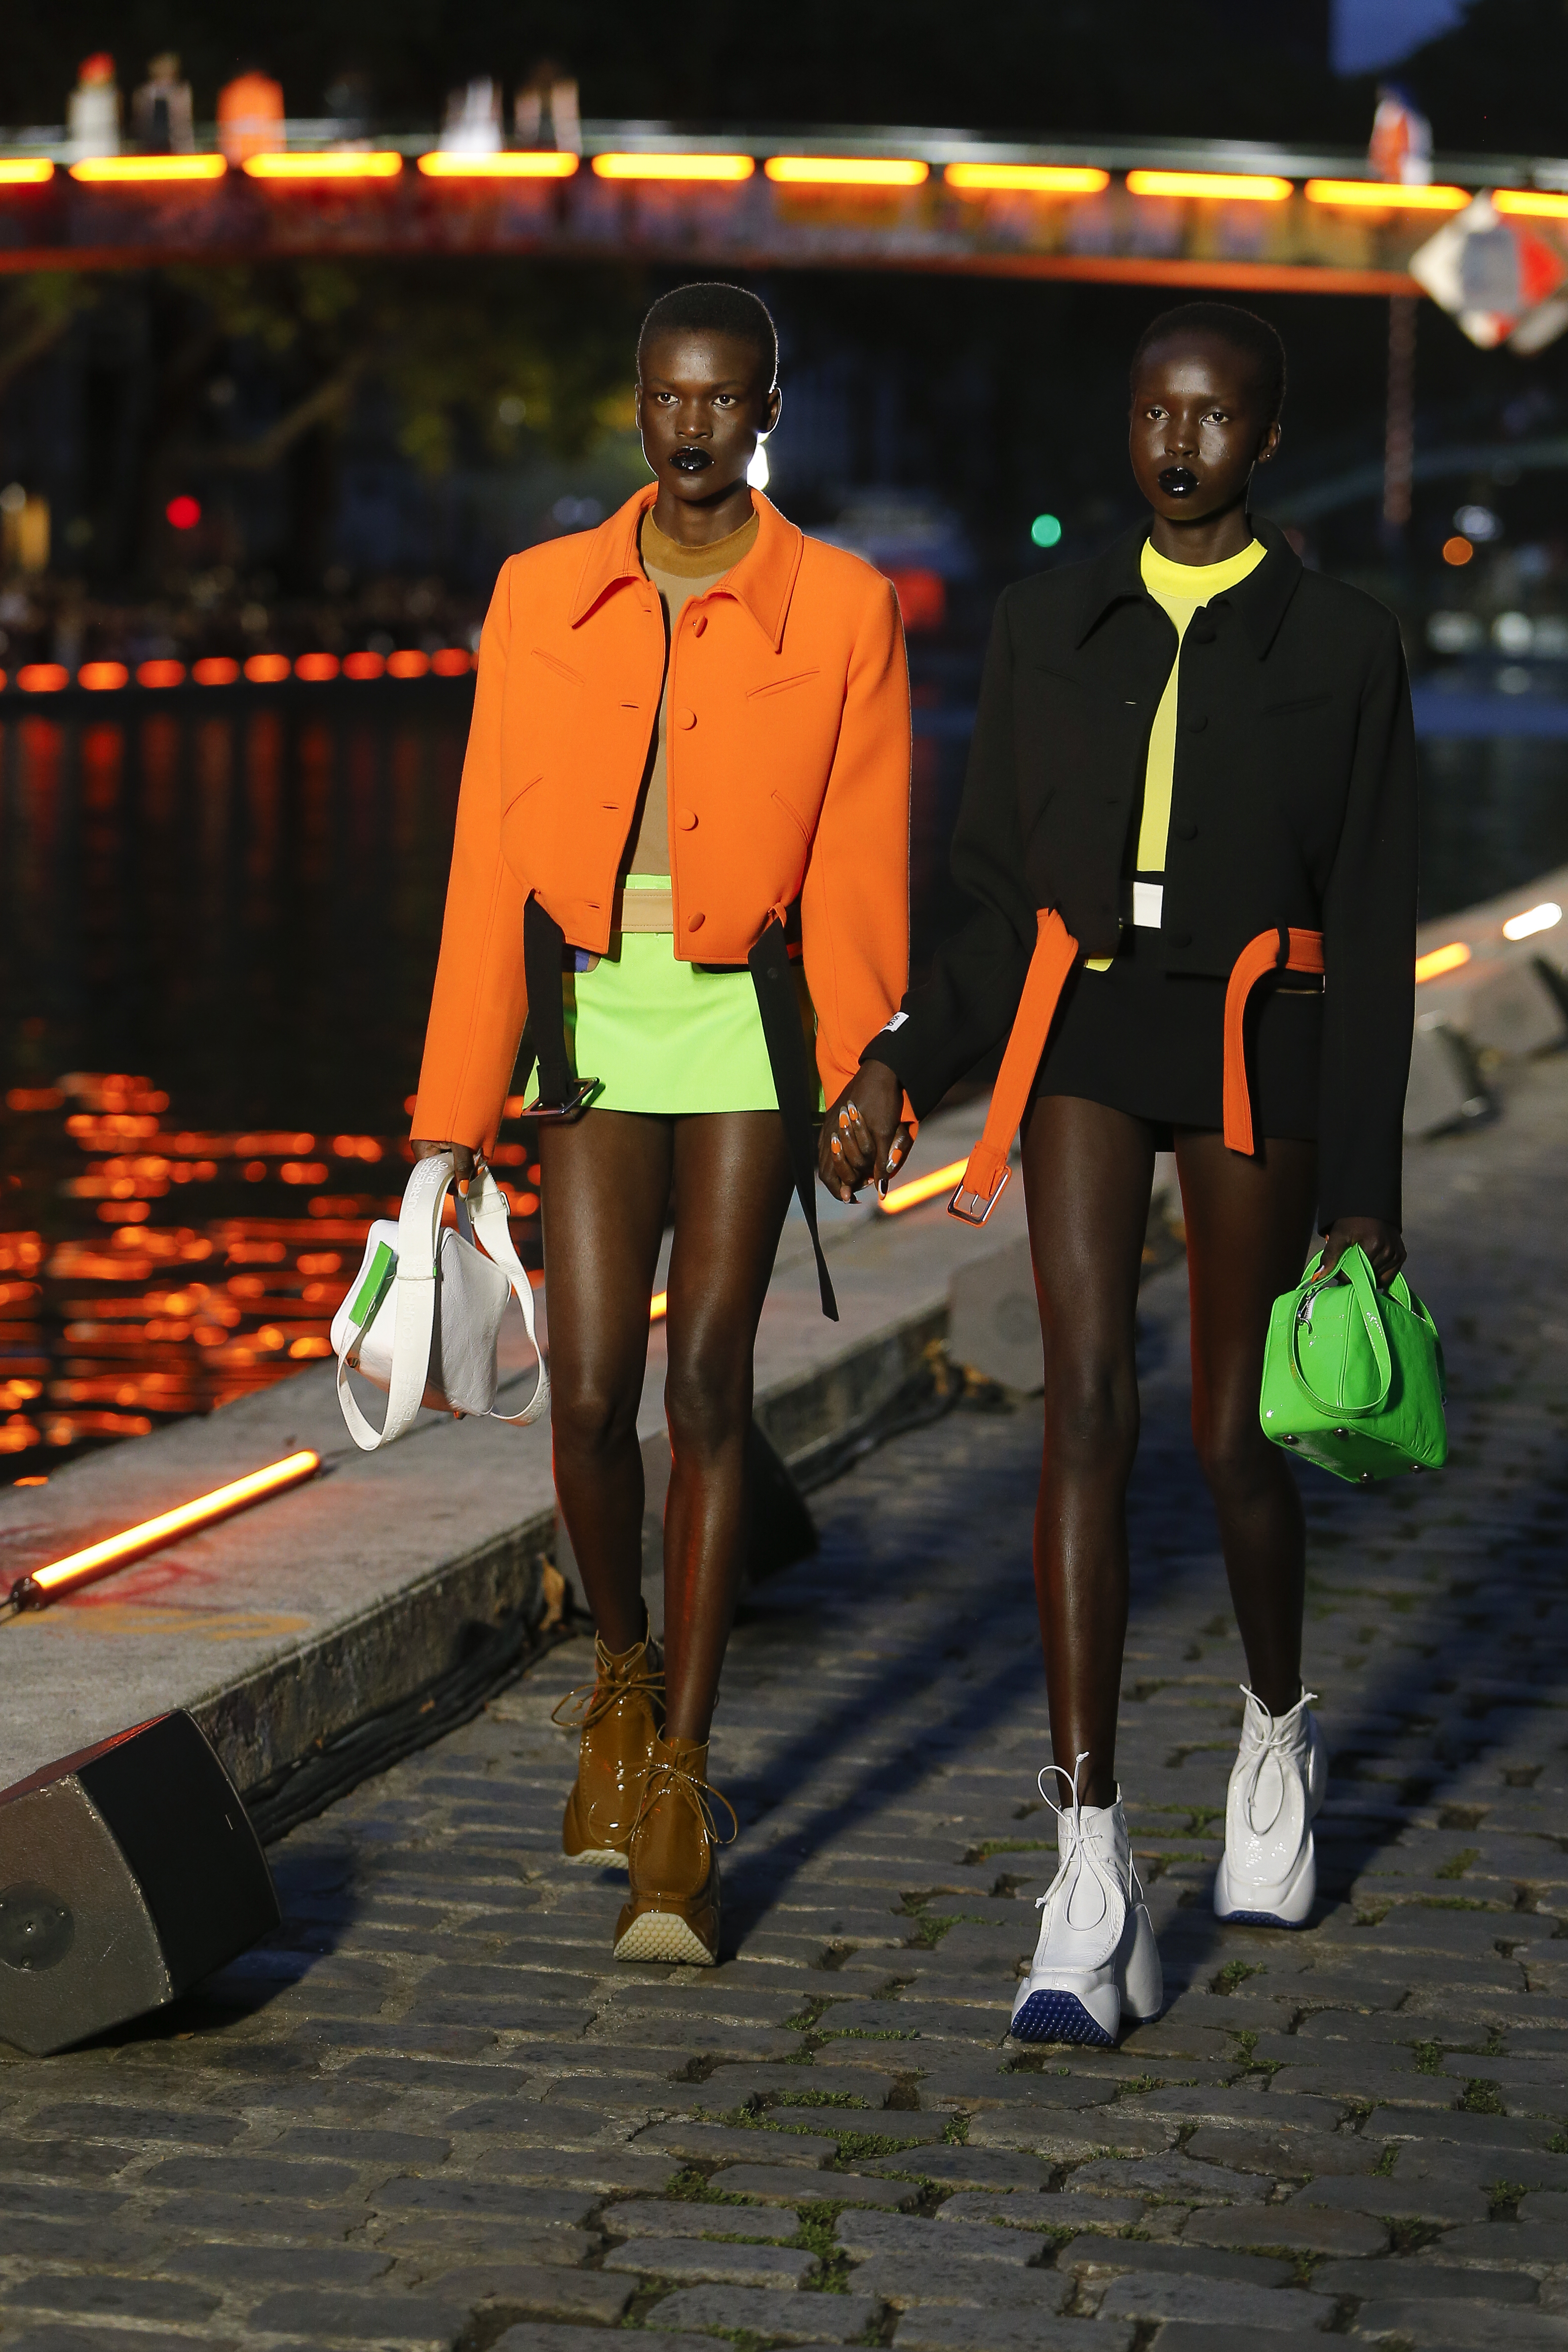 Courreges Runway Short Contrast Belted Jacket in Orange Mini Skirt in Lime Green Short Contrast Belted Jacket in Black Mini Skirt in Black SS20